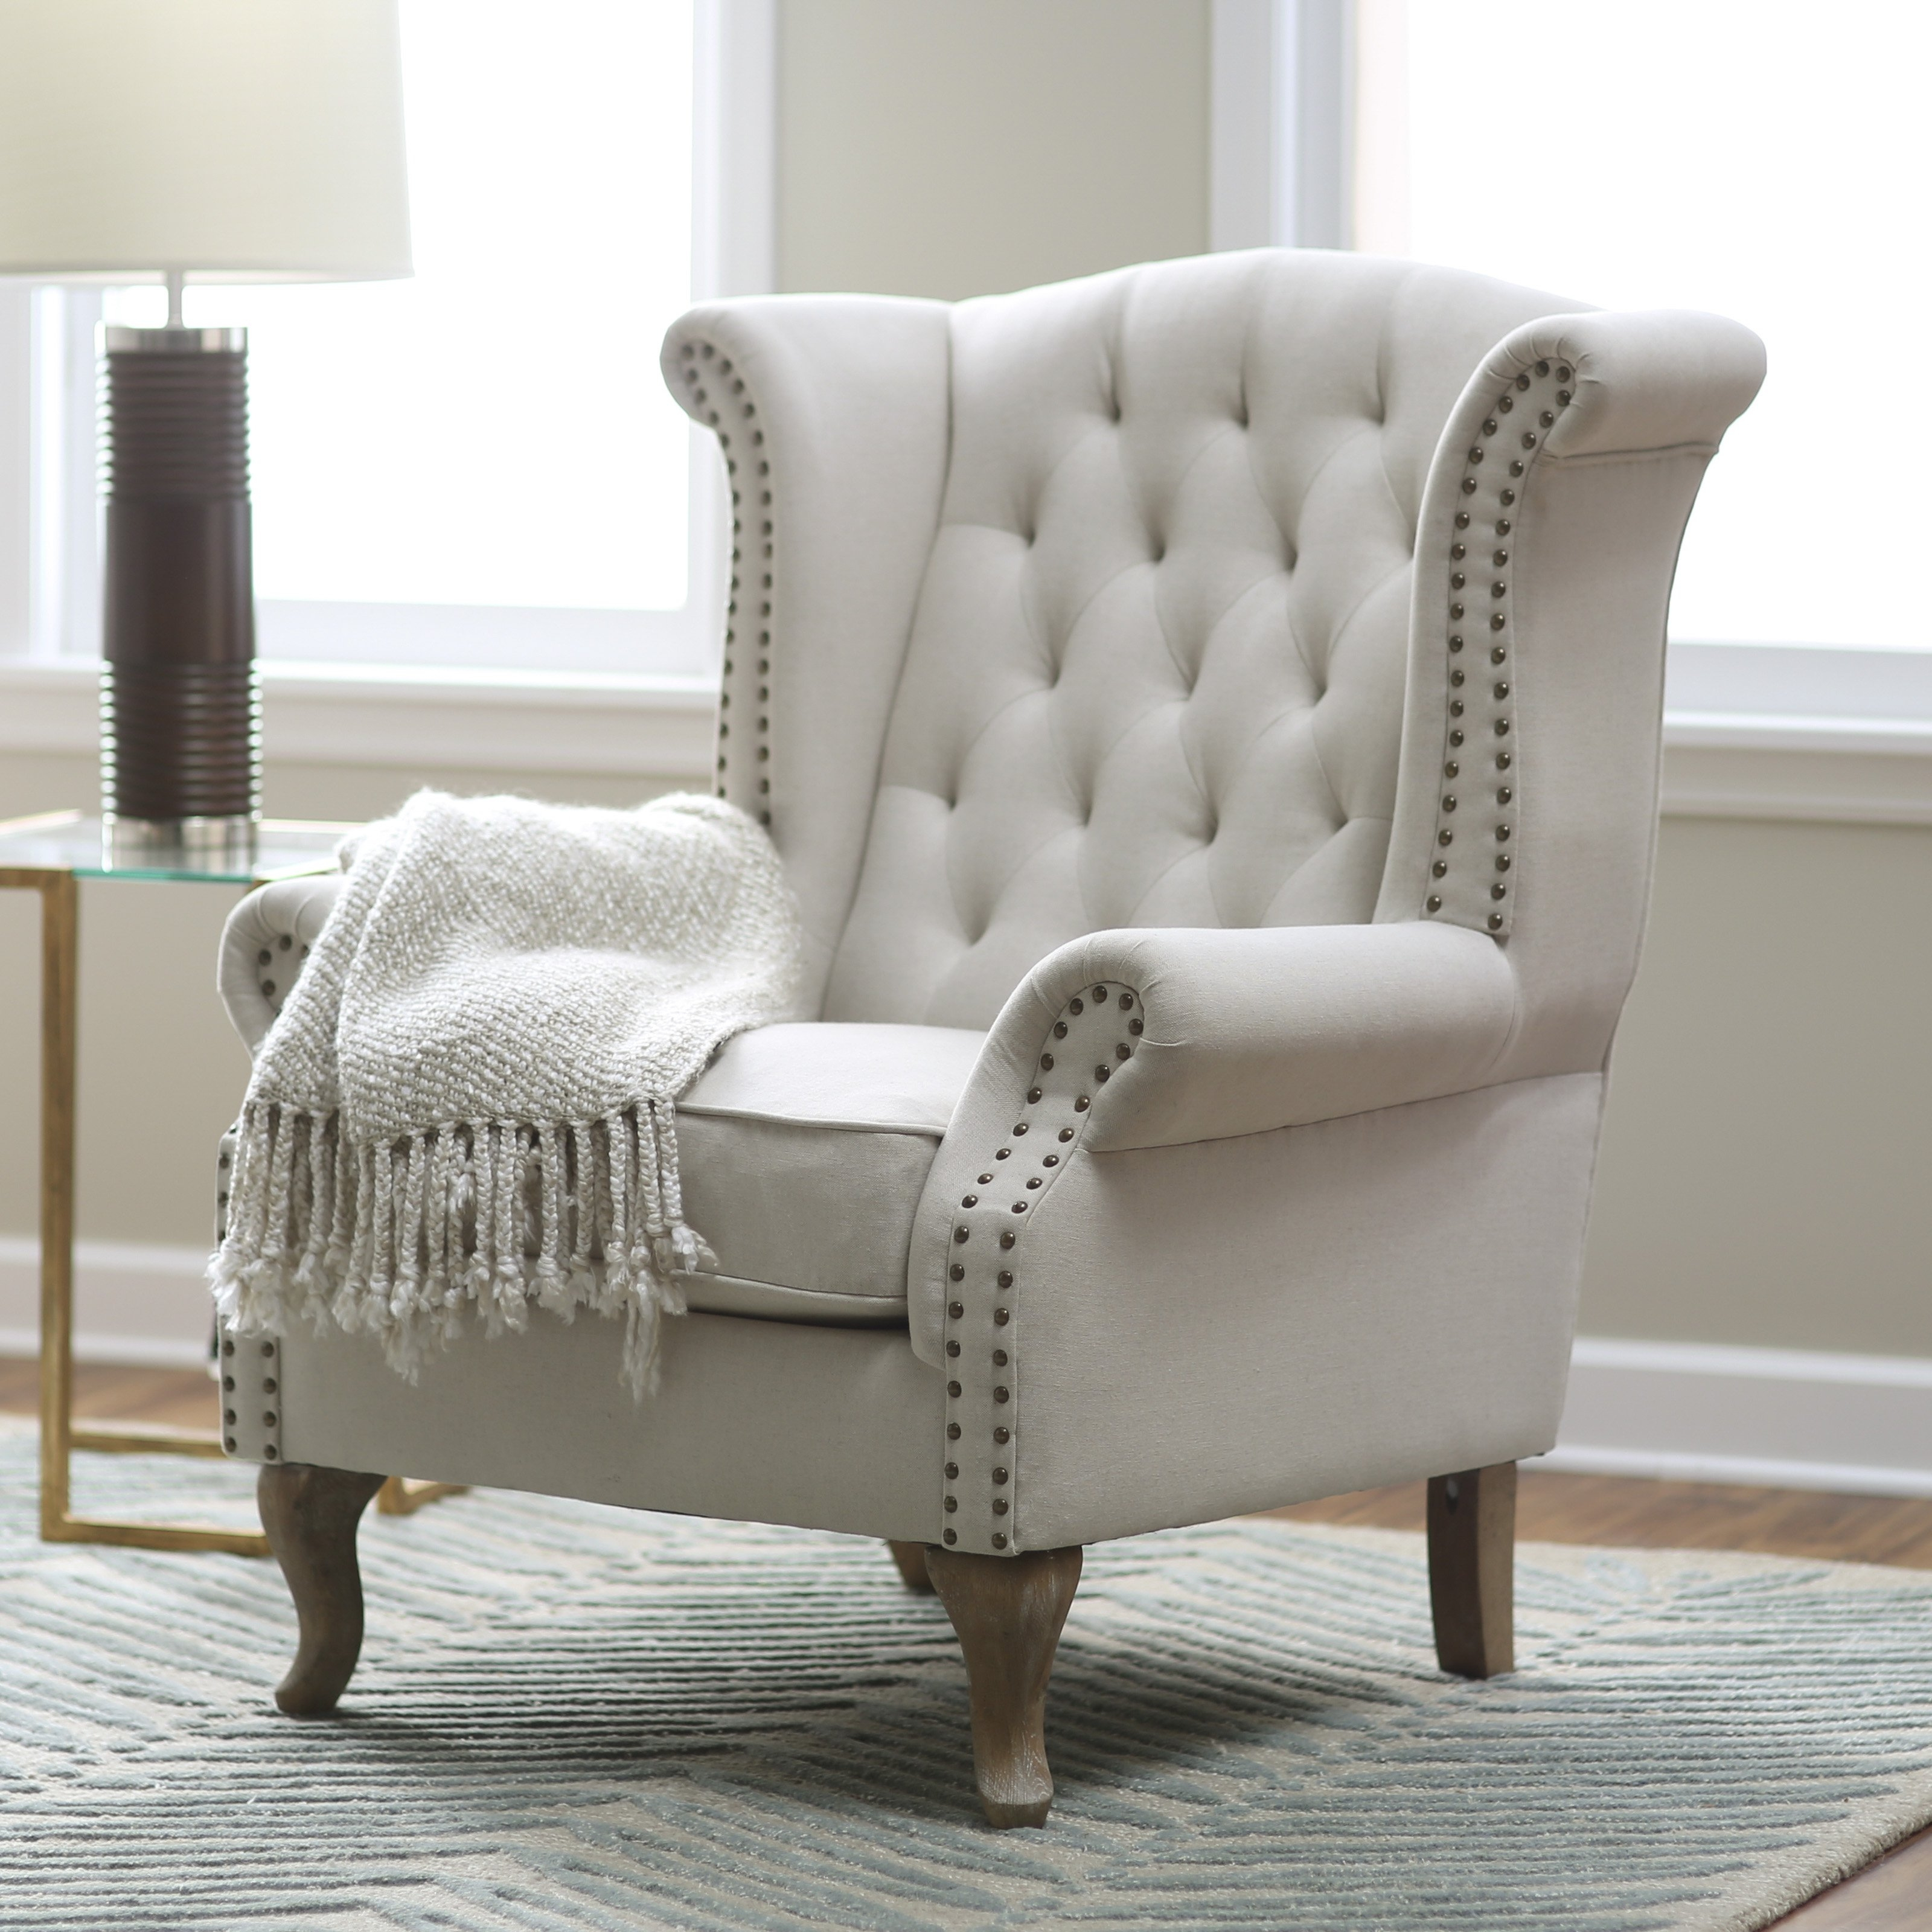 Madison Living Room Sofa Arm Chair Accent Chair Amp Ottoman Luxury Intended For Sofa Arm Chairs (Image 10 of 15)